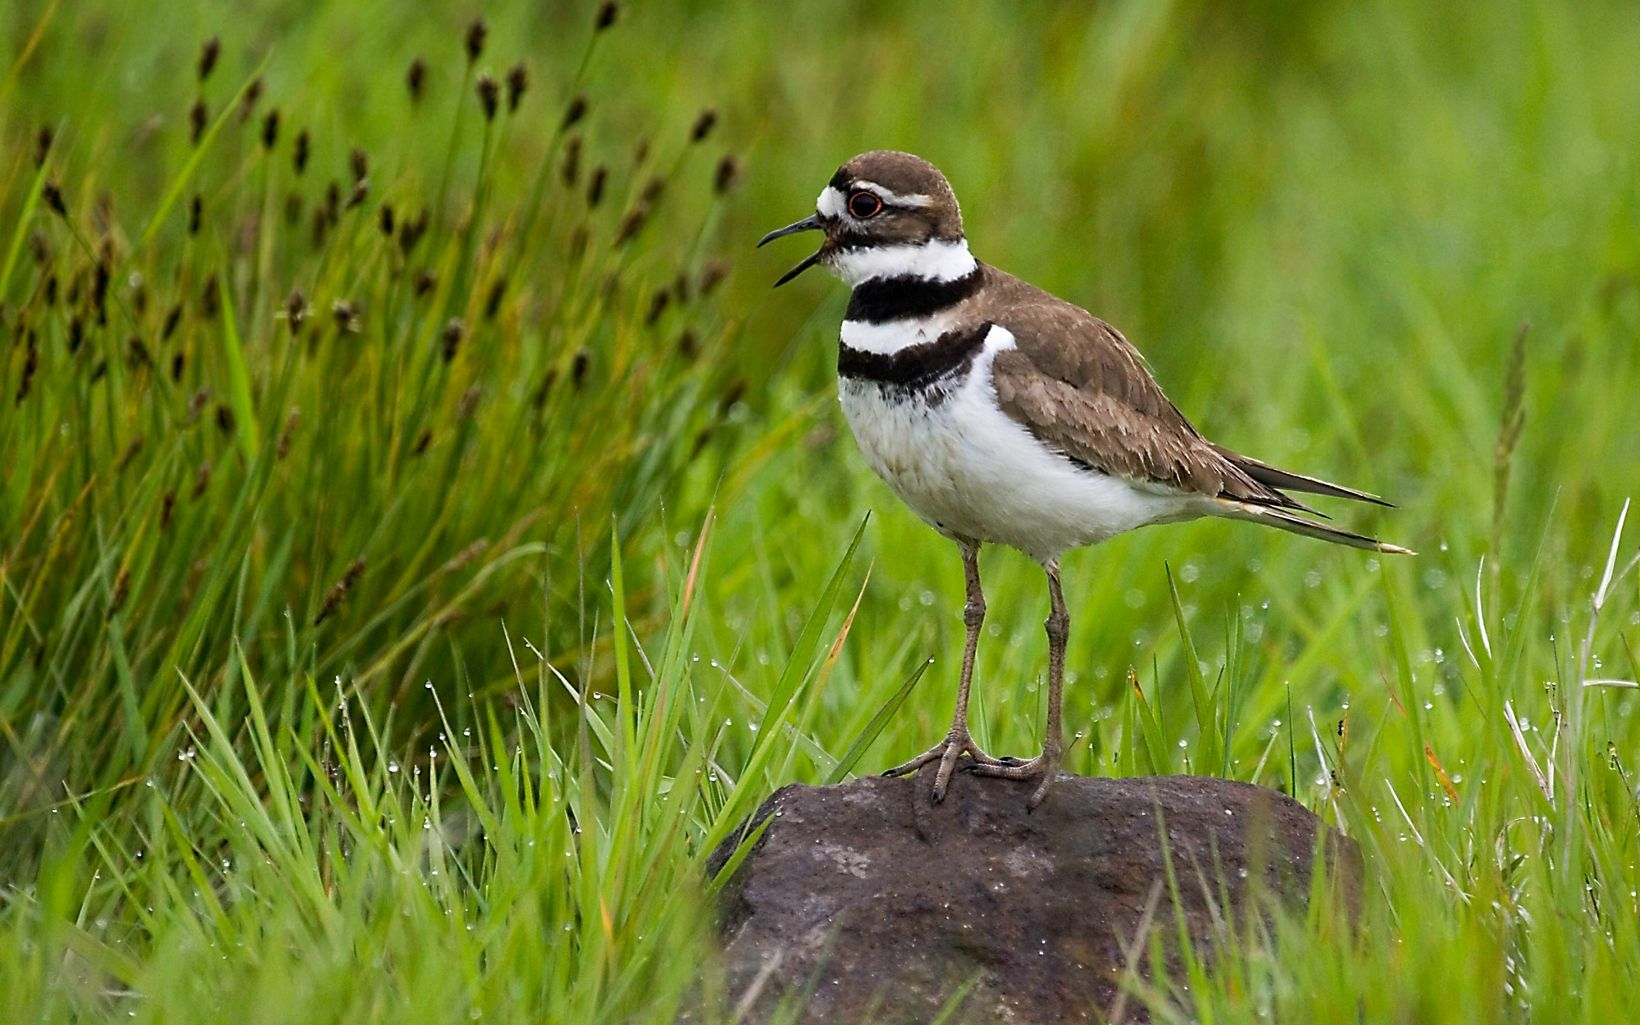 Brown and white bird with two black stripes at neck and chest stands on a small rock in a field of grass.